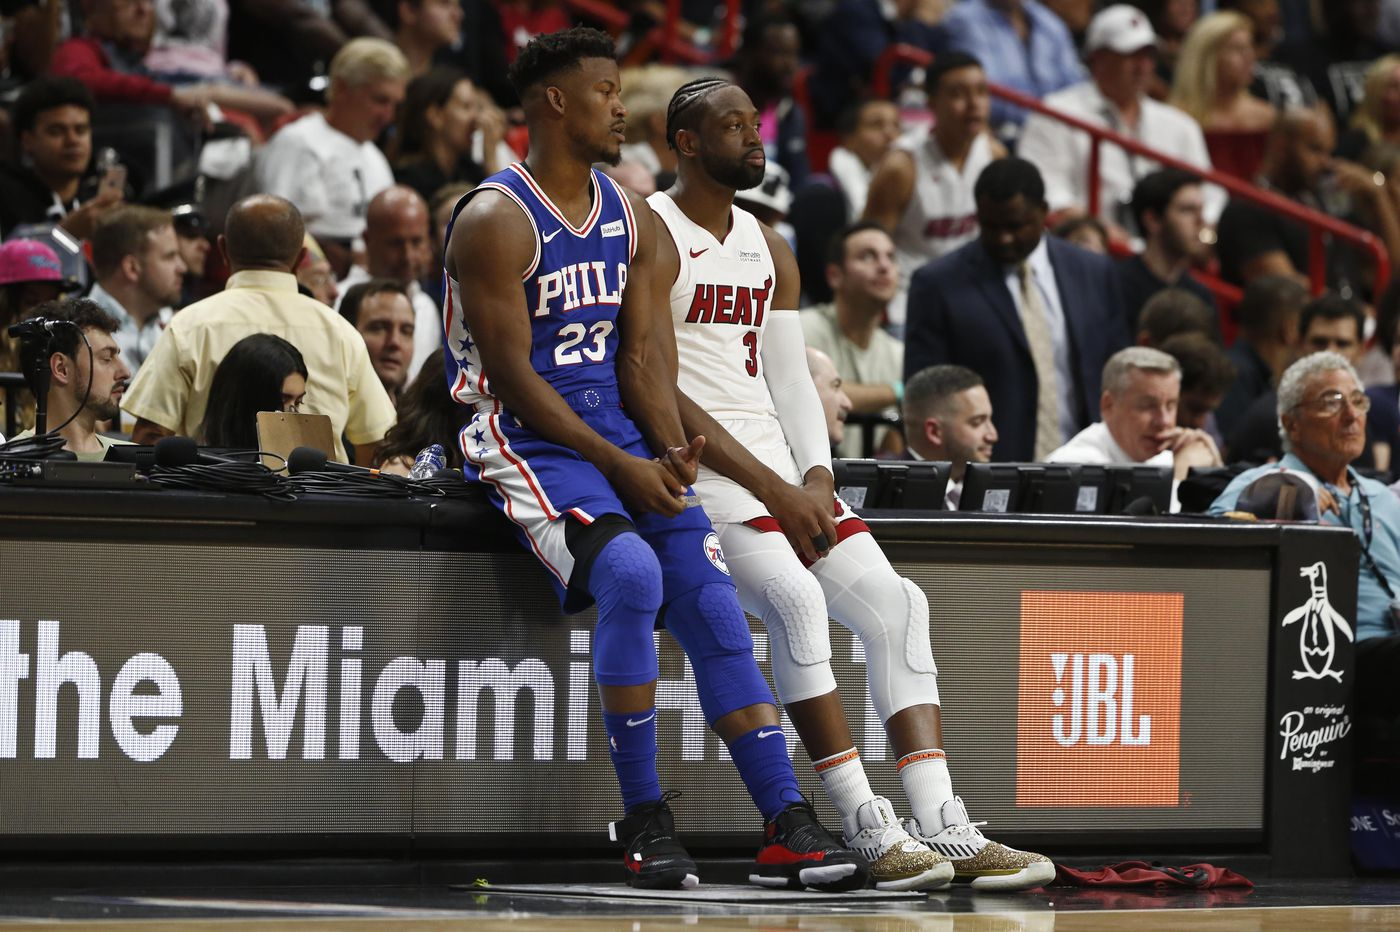 Sixers get blown out by Heat in Dwyane Wade's final home game